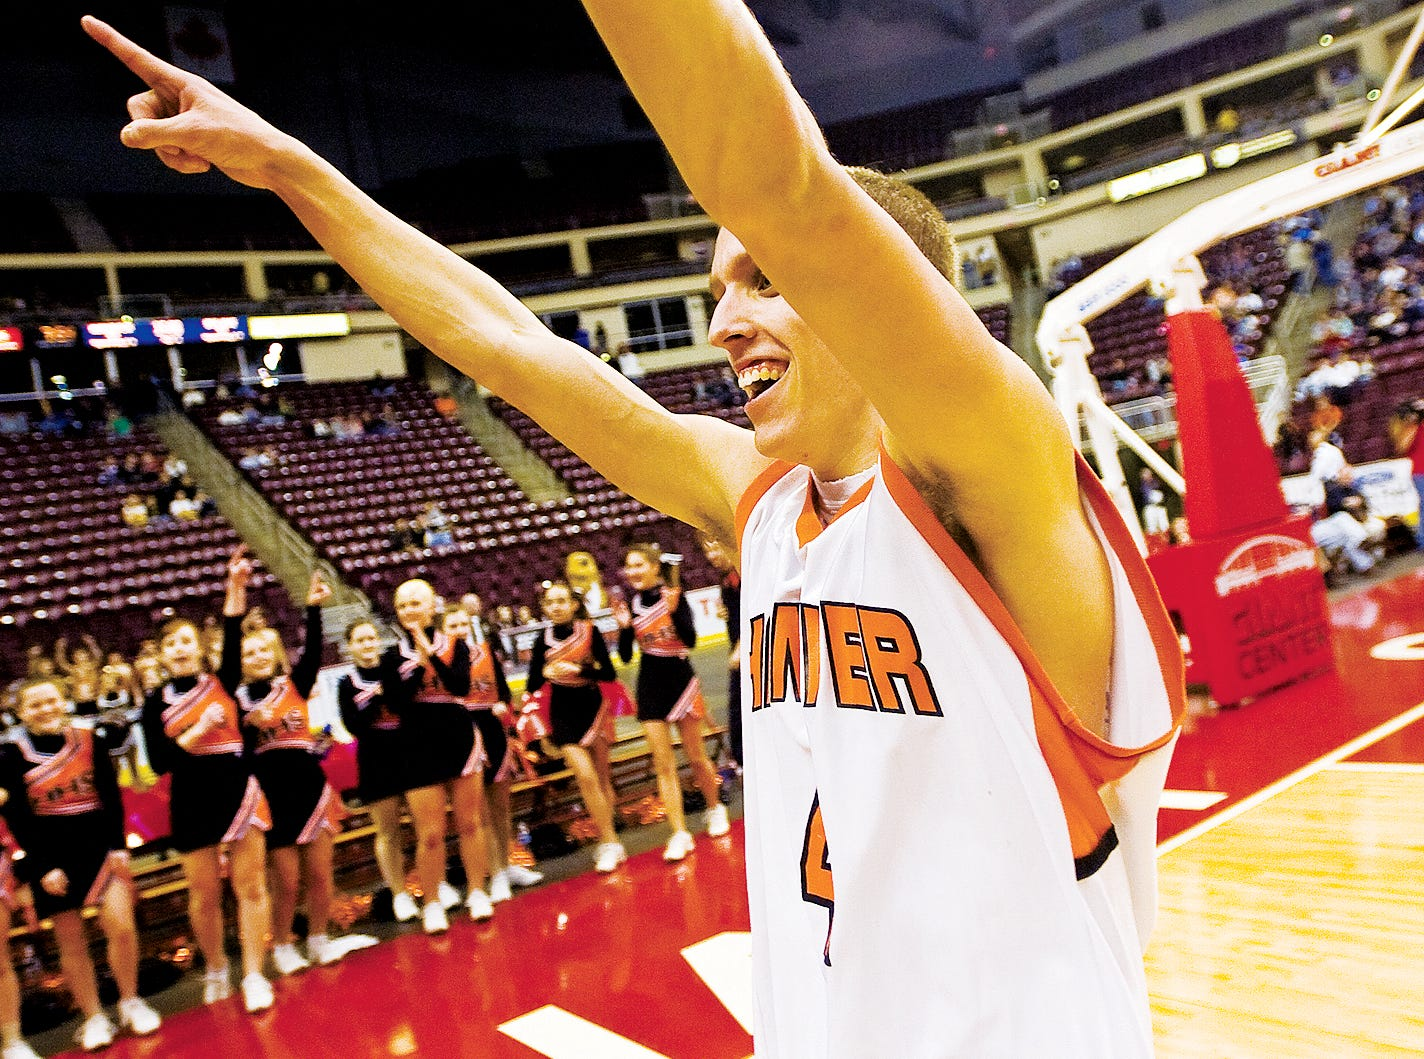 In this file photo from 2011, Hanover's Pete Yingst cheers toward the crowd after the Nighthawk's secured their 54 to 51 victory over Delone Catholic during Friday night's District 3 Championship basketball game at the Giant Center in Hershey.